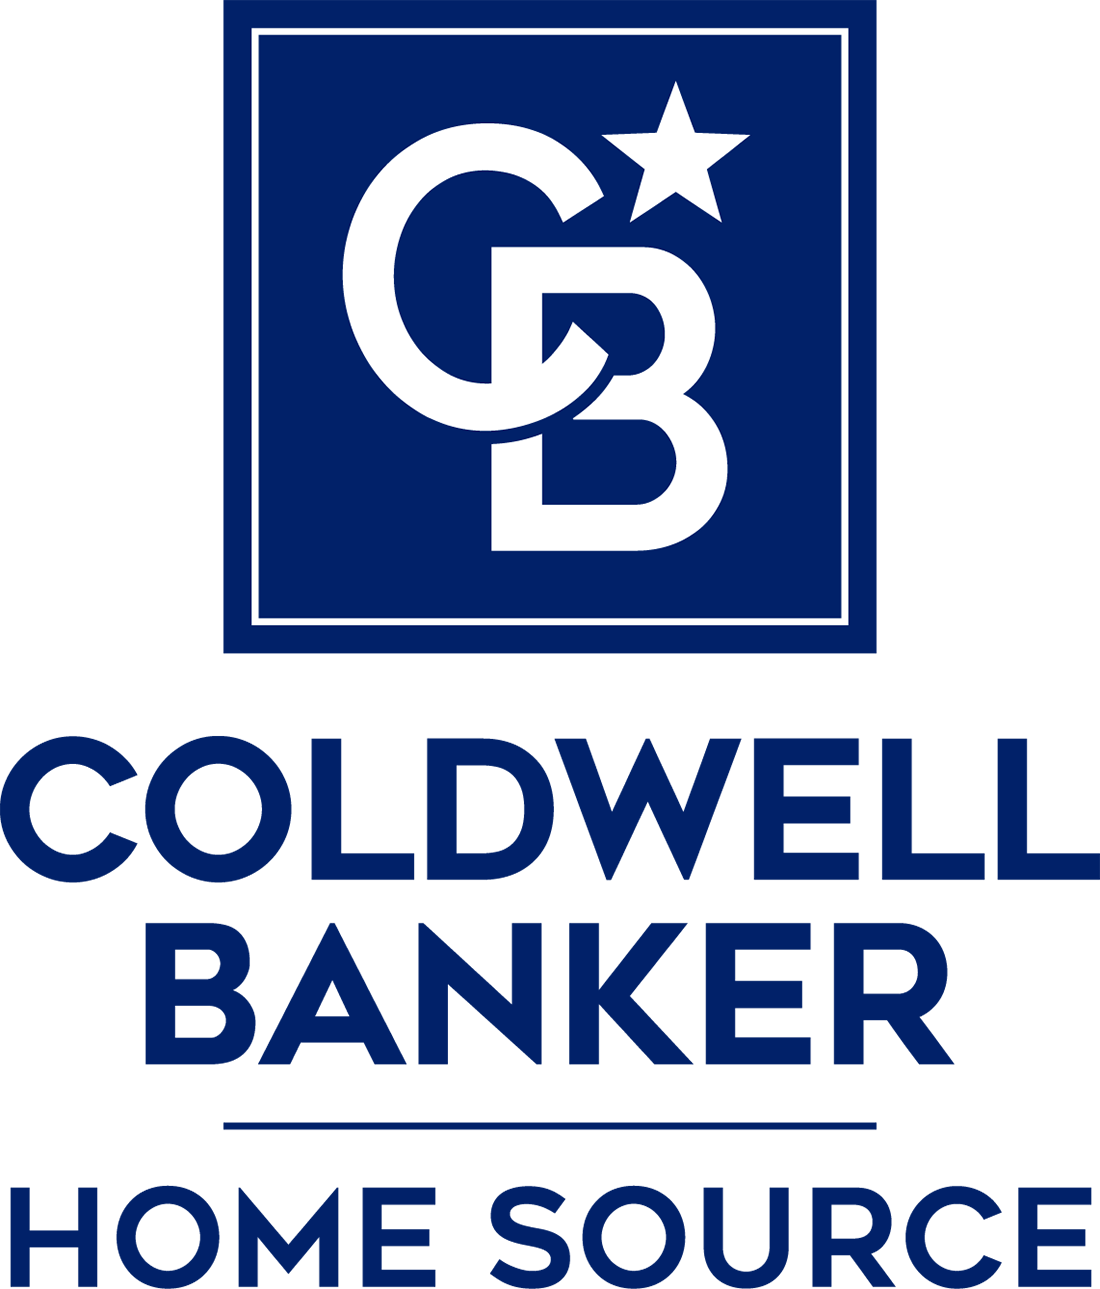 Aris Turcios - Coldwell Banker Home Source Logo